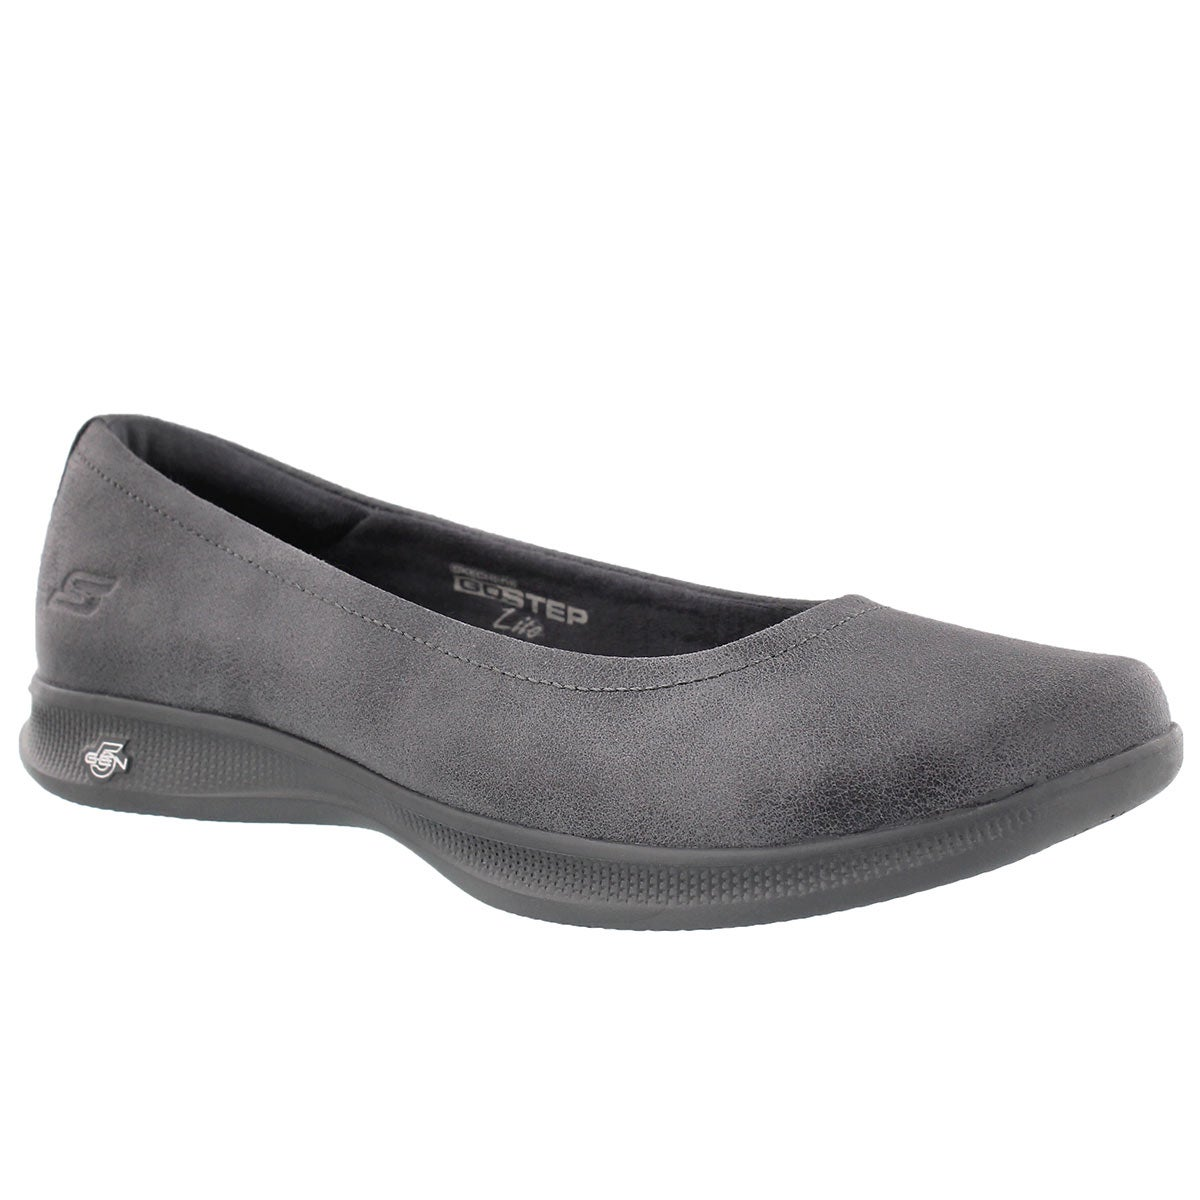 Lds GO Step Lite charcoal casual flat